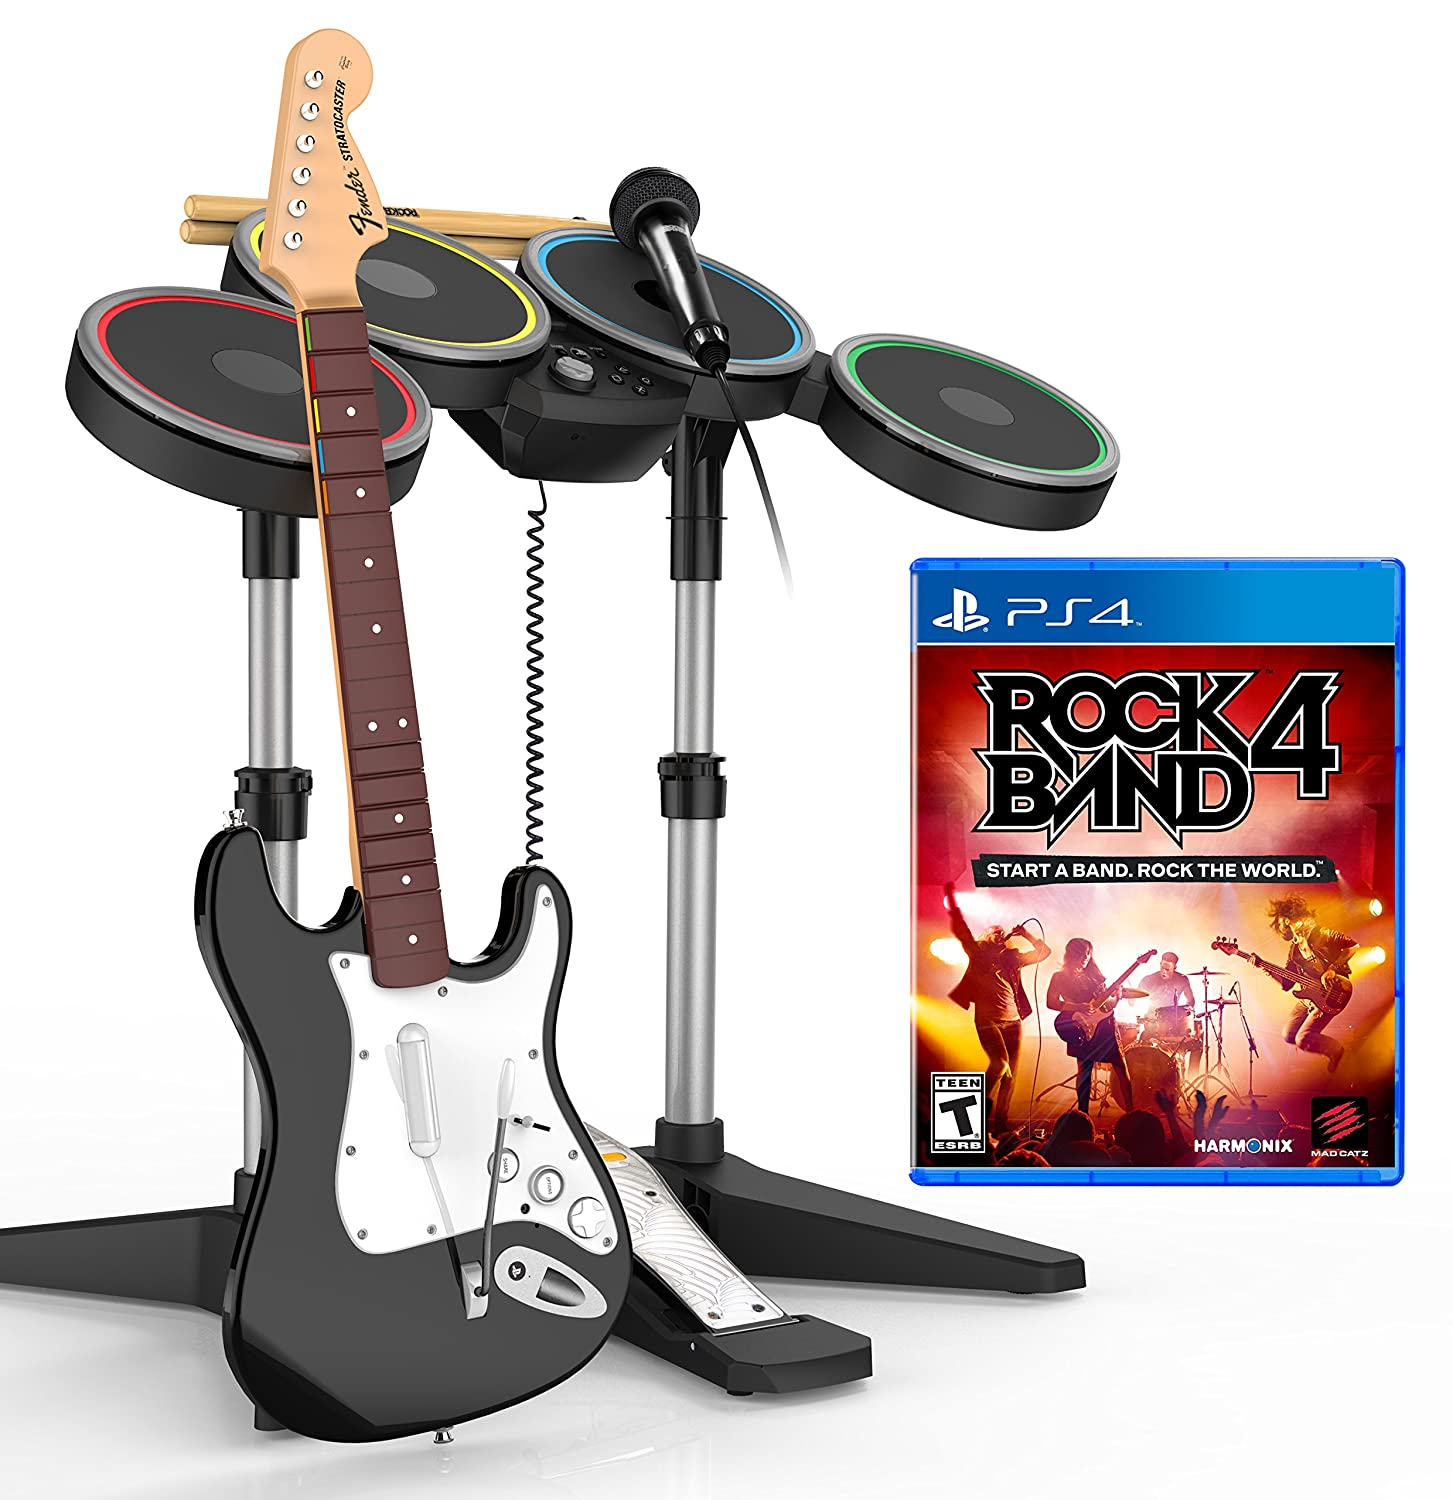 [Amazon.ca] PS4 Rock Band 4 Band-in-a-Box Software Bundle $185 (Reg $350)